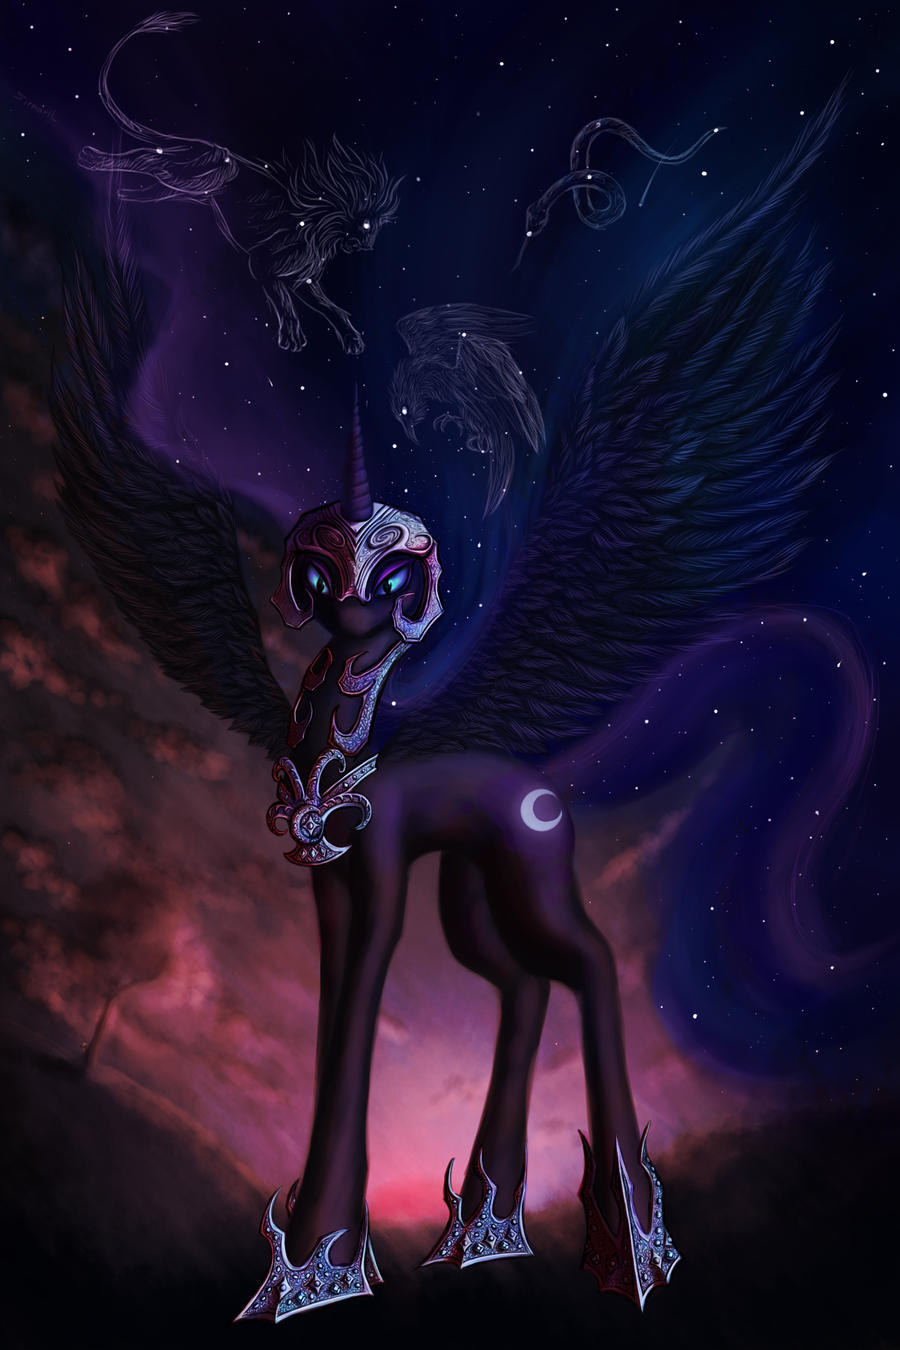 The Lunar Princess is back to bring the Nightmare by Sirmaril